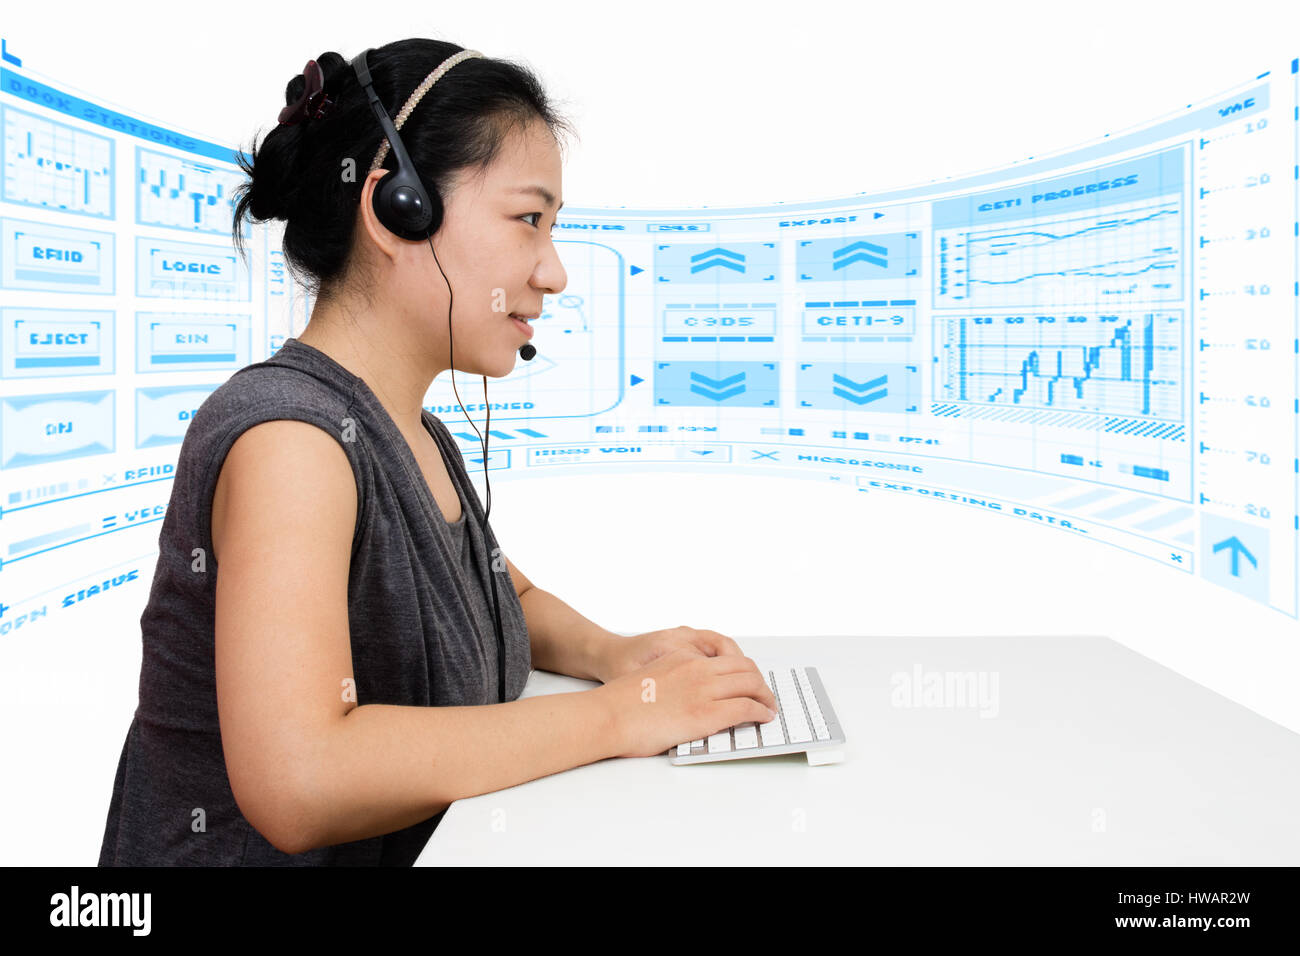 Asian Woman with Headset Using Keyboard in Isolated White Background Stock Photo